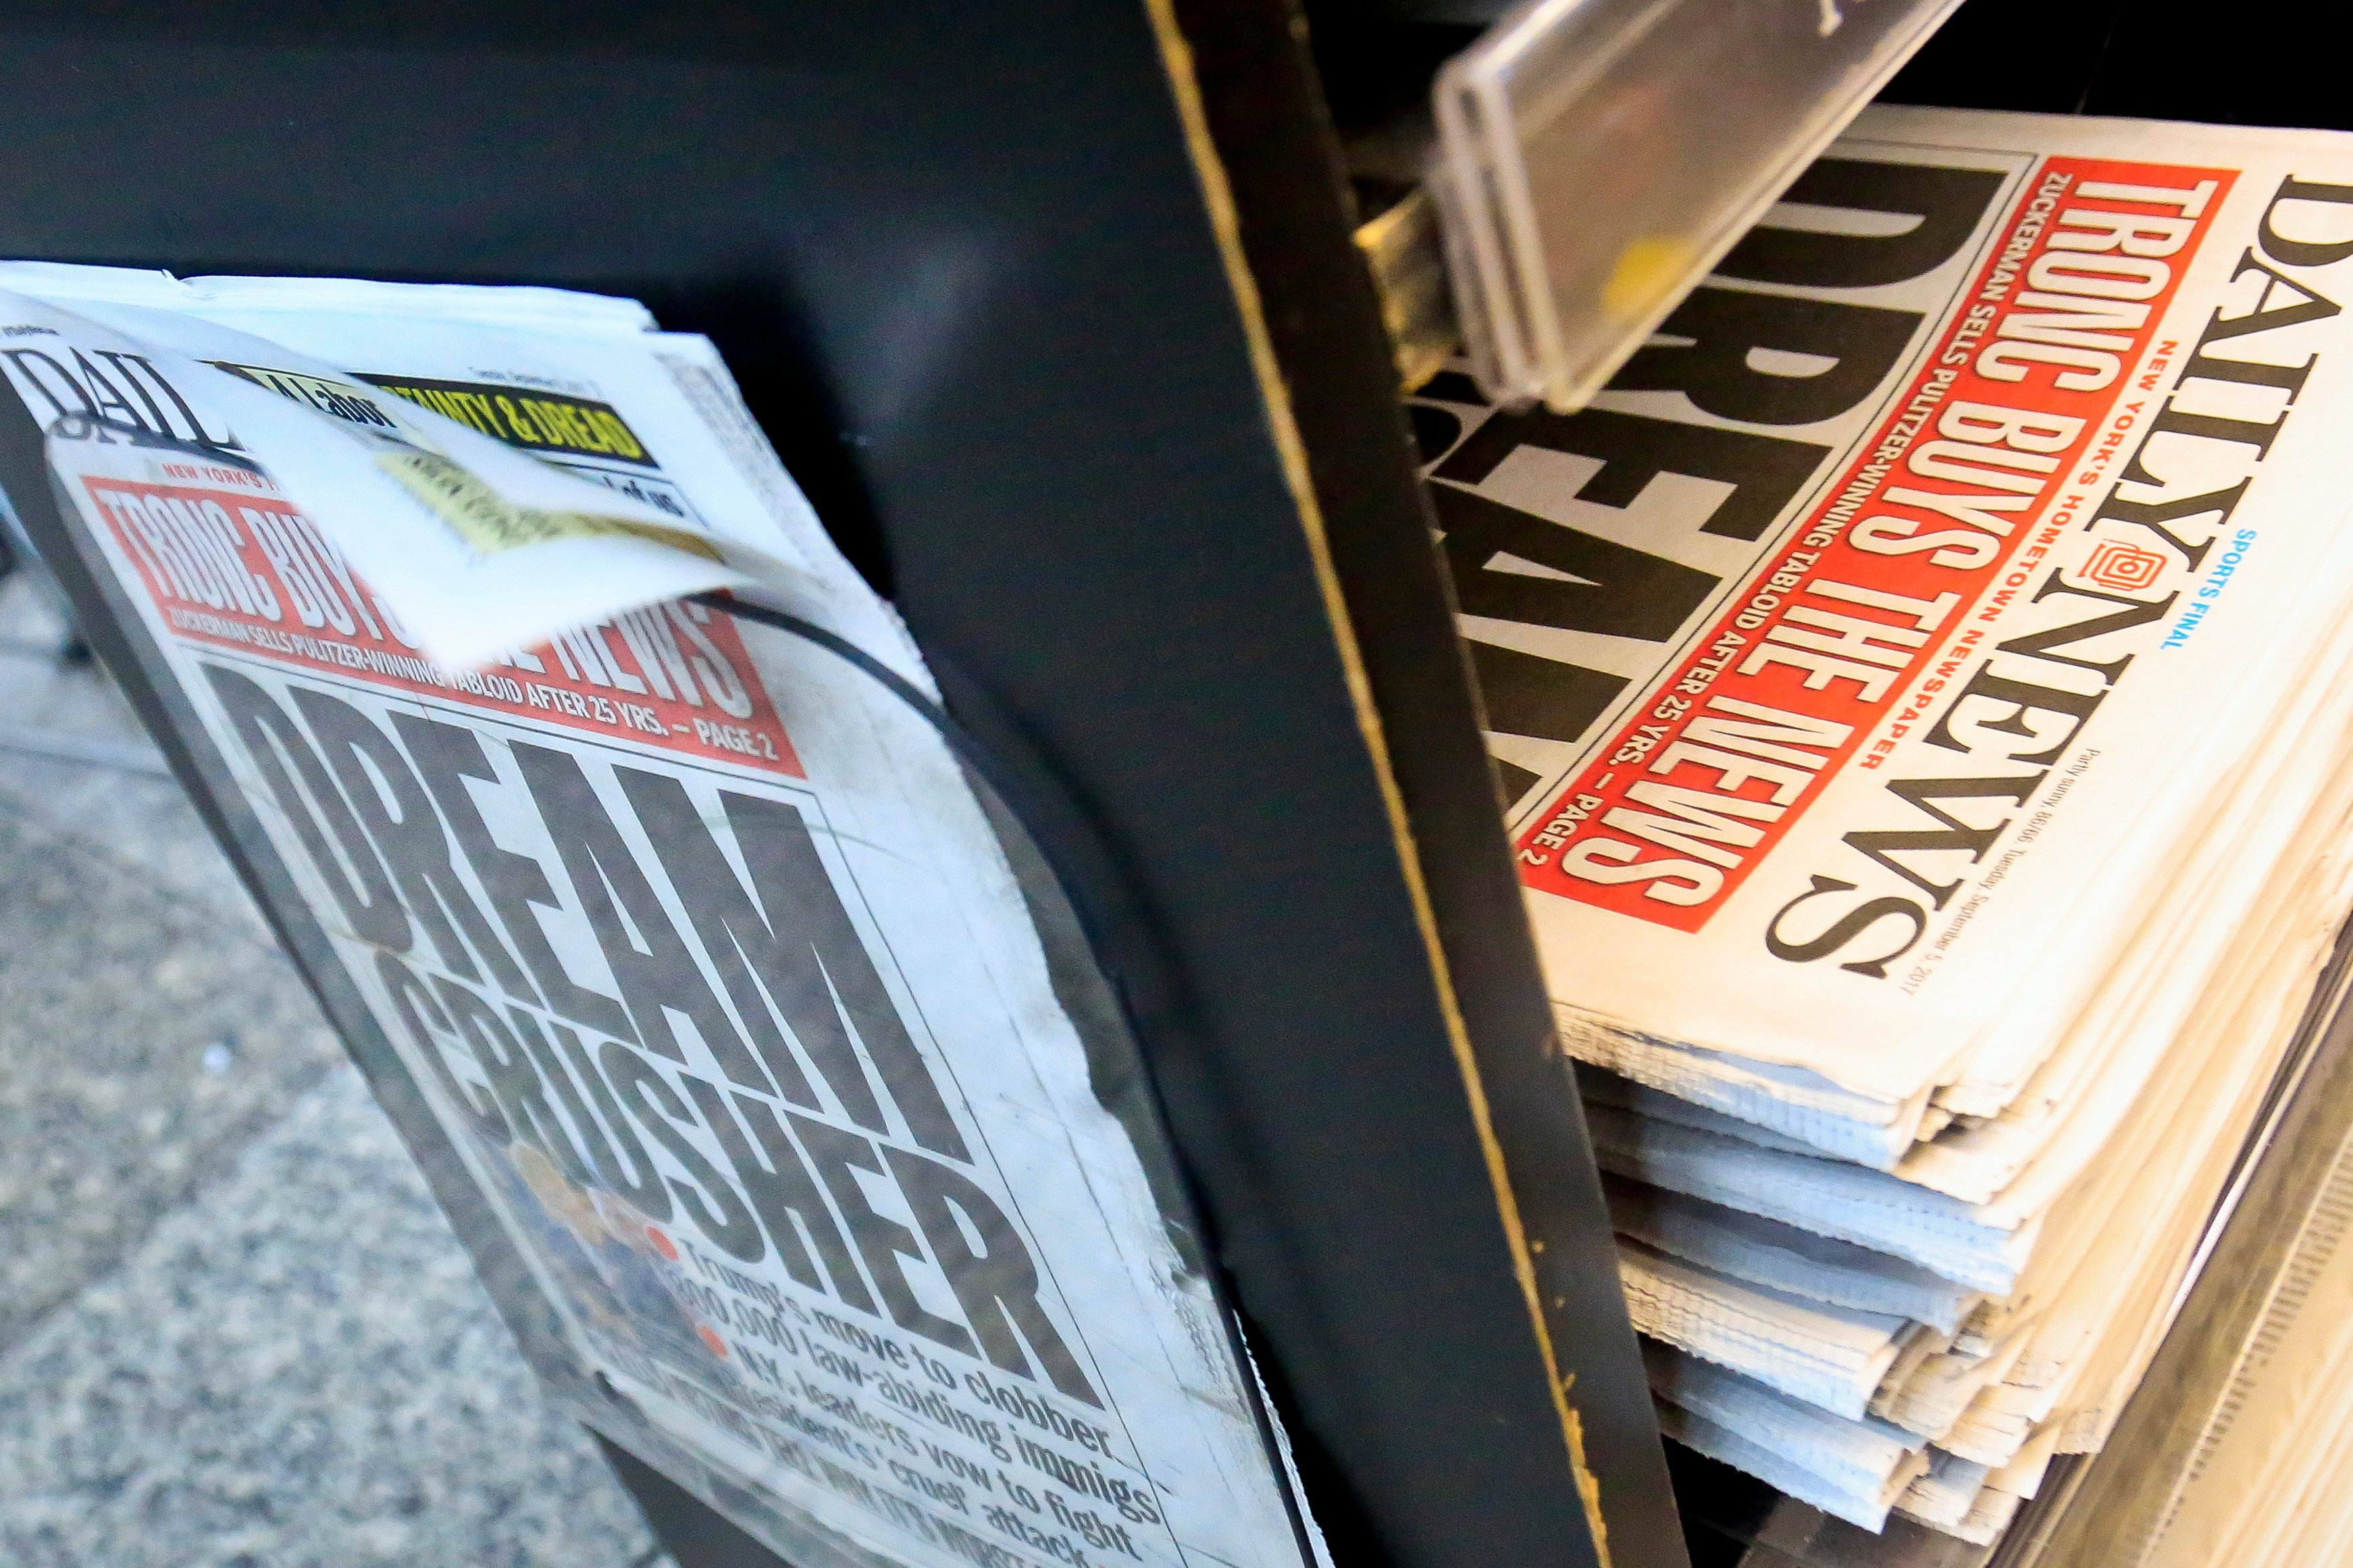 Daily News online readership plunges in wake of paywall